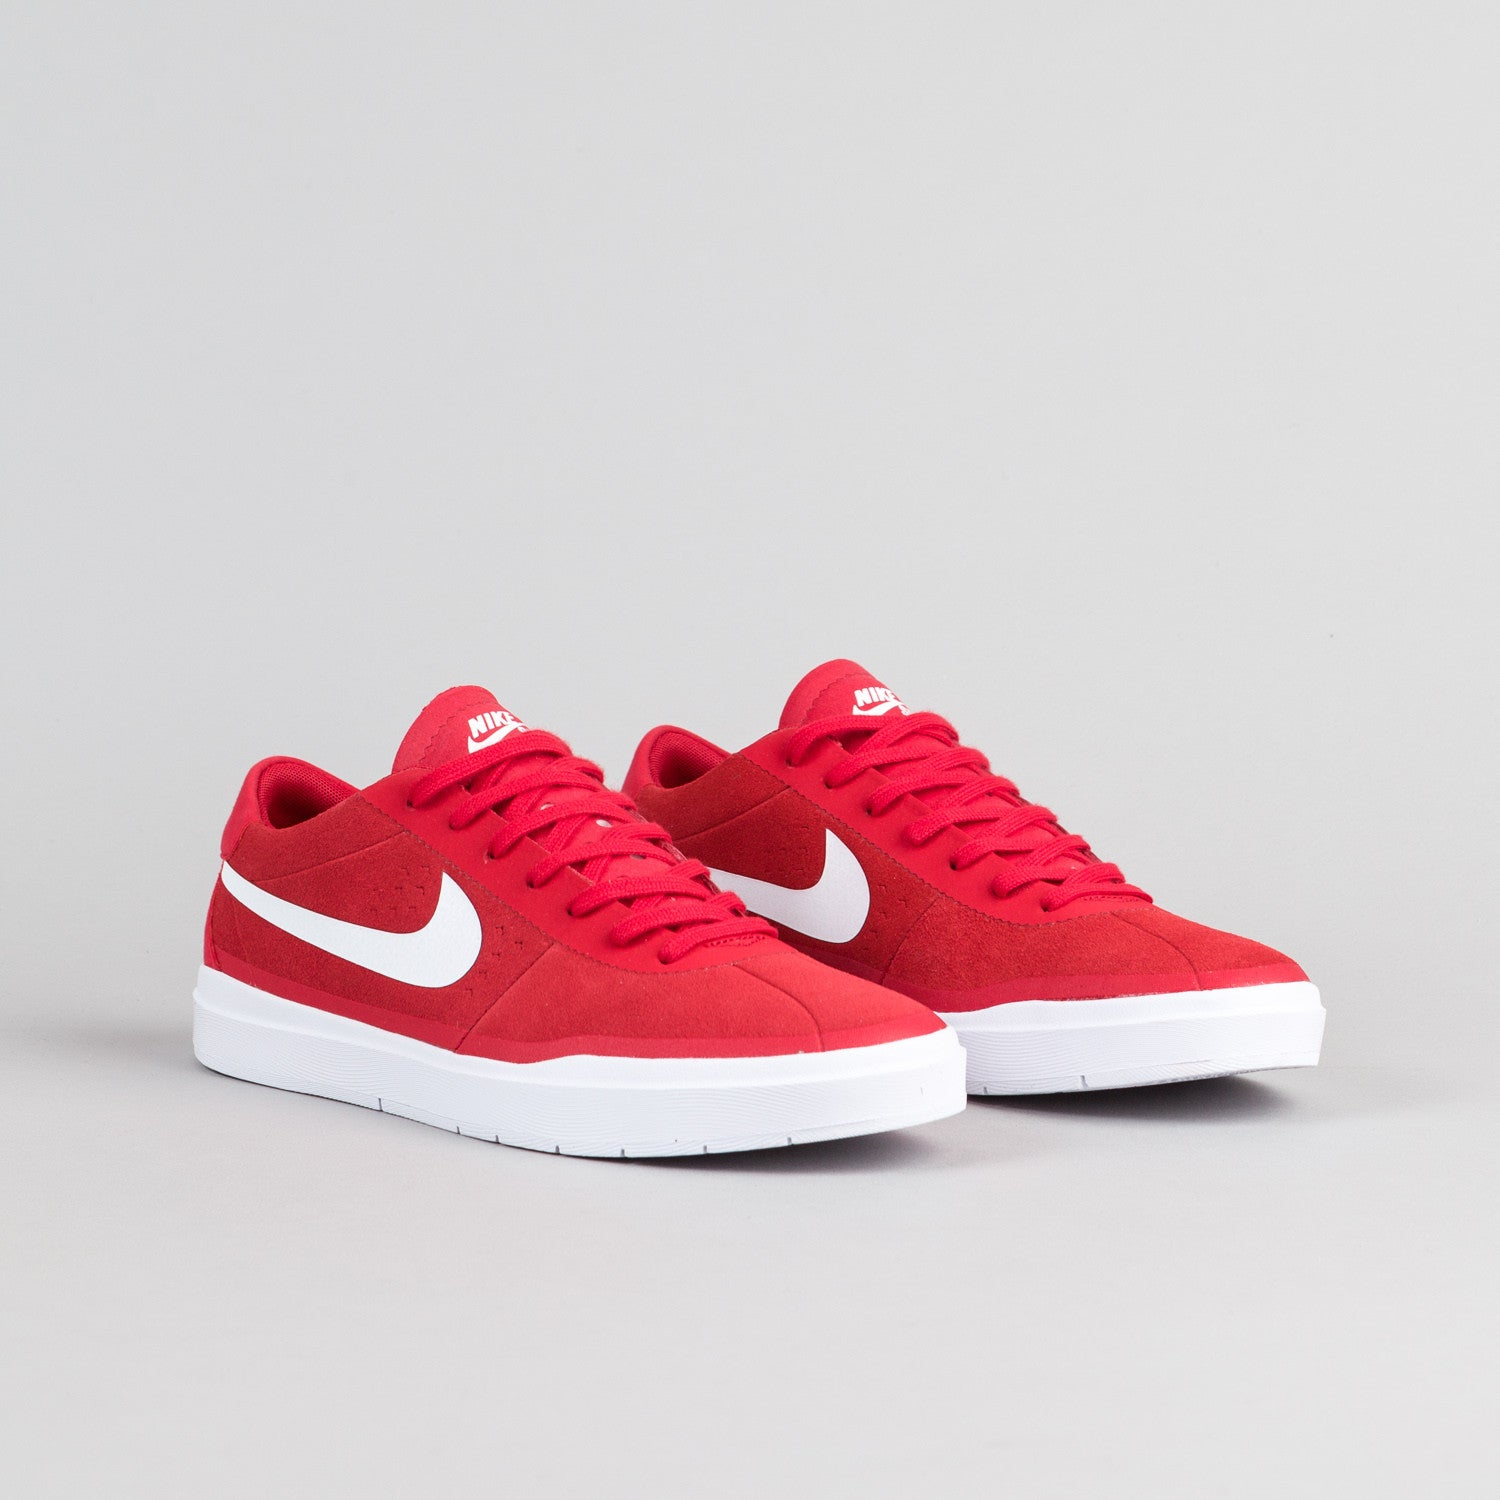 Nike SB Bruin Hyperfeel Shoes - University Red / White - Black - White